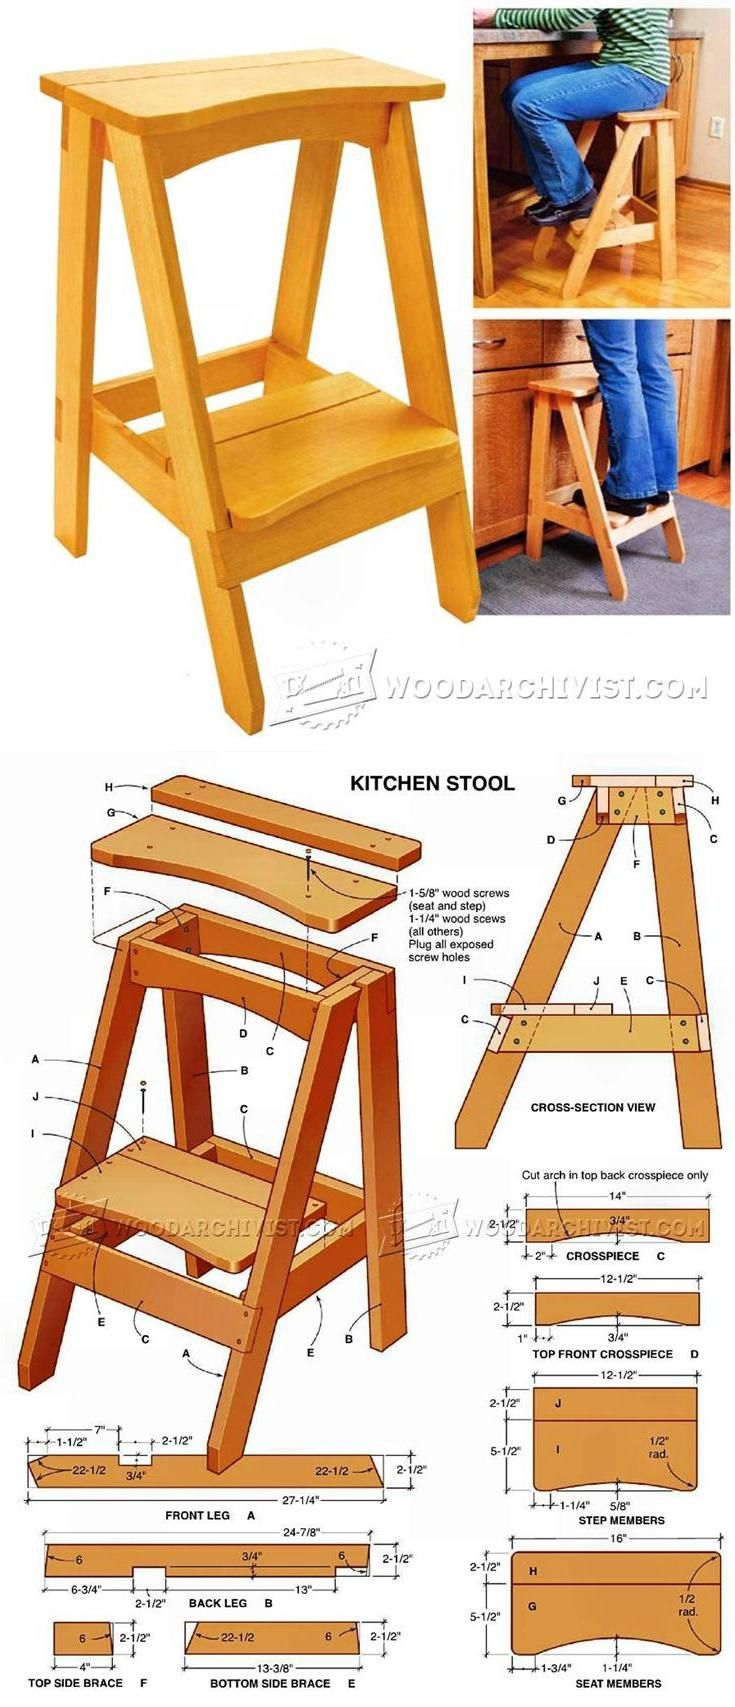 Kitchen Step Stool Plans   Furniture Plans And Projects | WoodArchivist.com